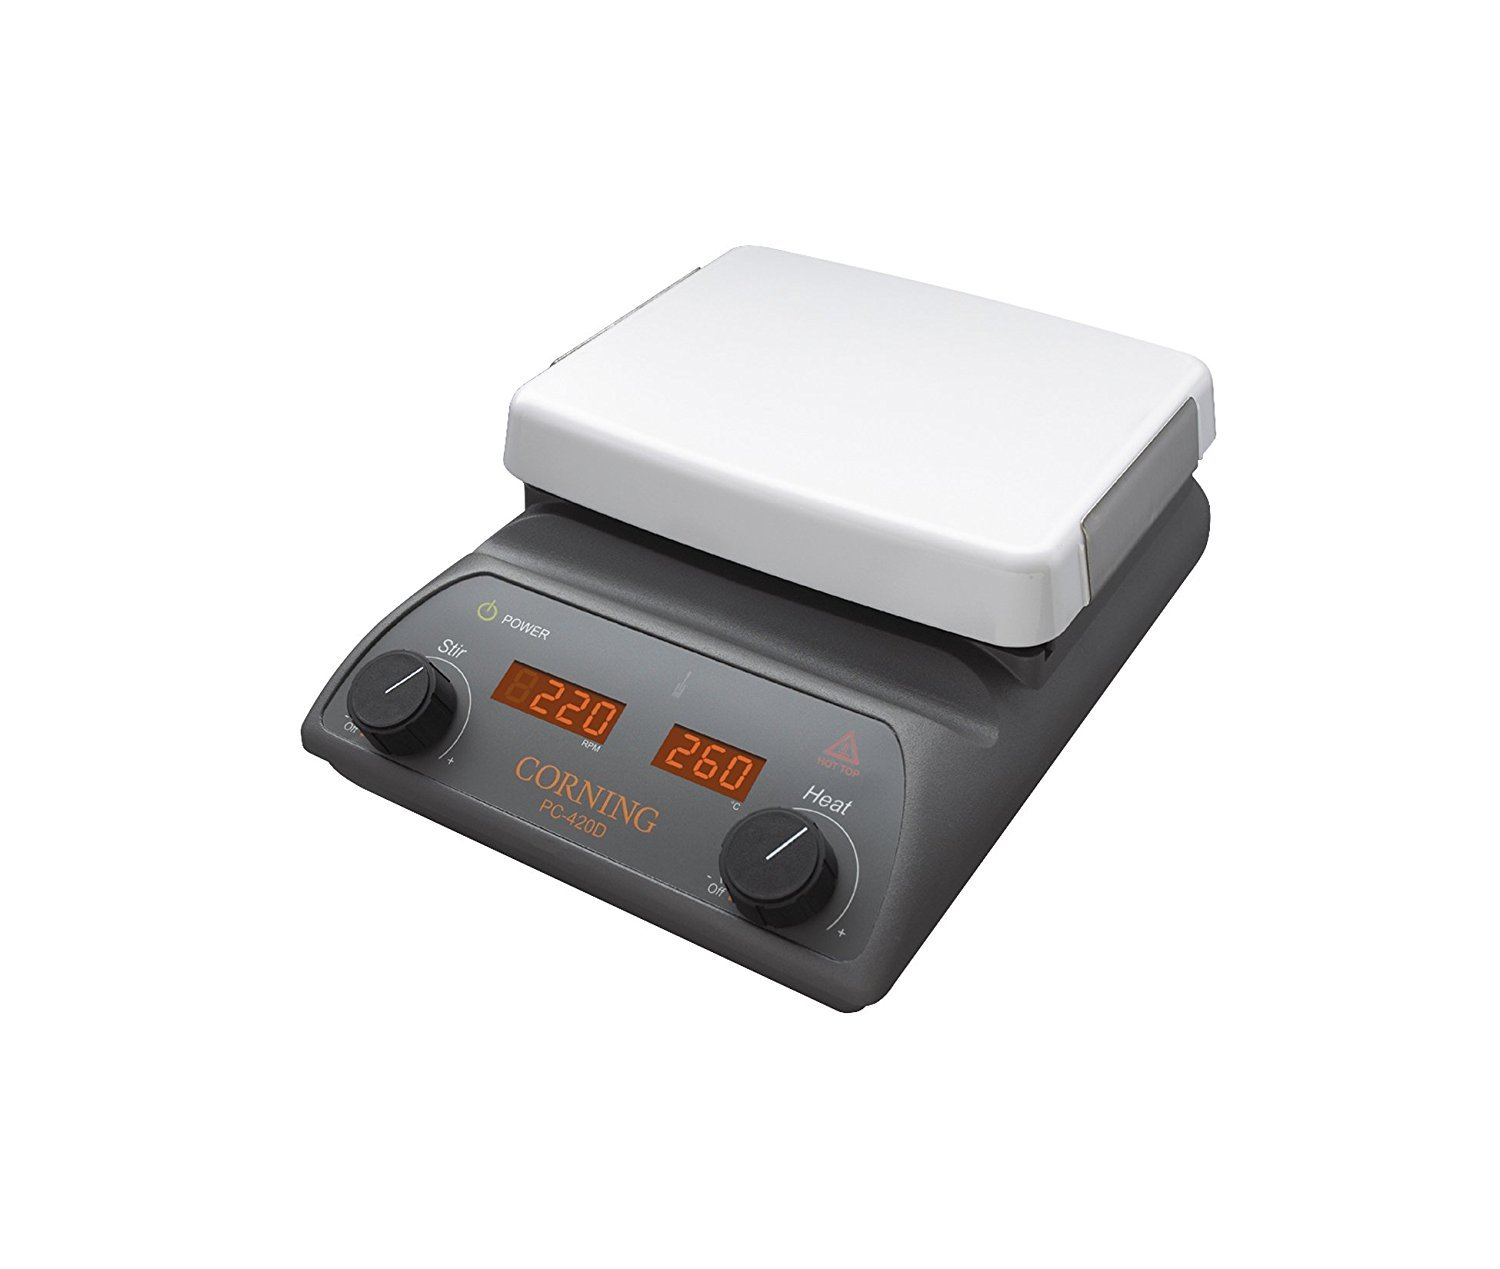 Corning 6795-620D 10 x 10'' Top PC-620D Stirring Hot Plate with Digital Displays, 120V/60Hz (1 Each), Milliliters, 5 to 500°C (41 to 1022°F) Degree C, Pyroceram Glass-Ceramic, (